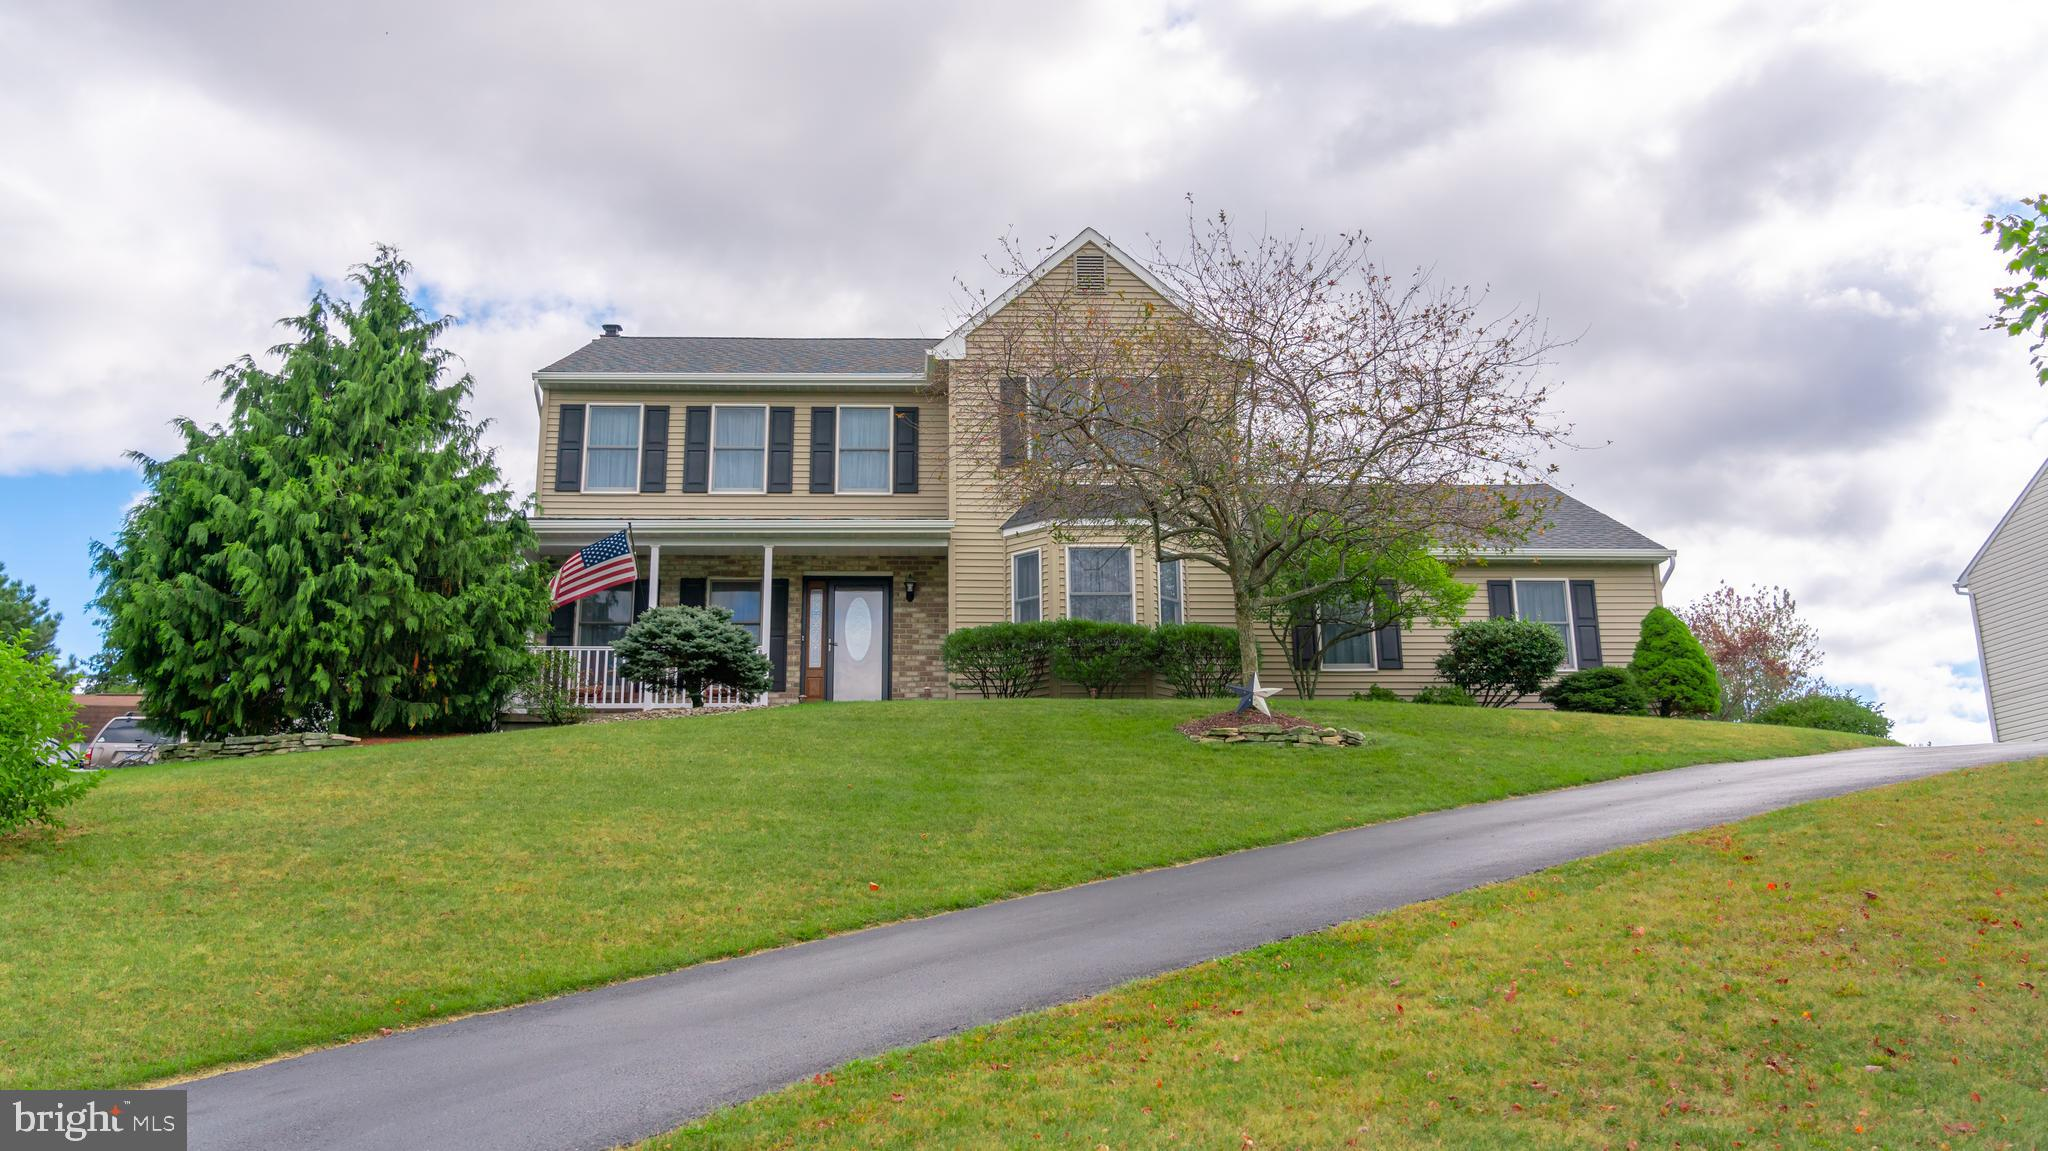 313 SPY GLASS HILL ROAD, BATH, PA 18014